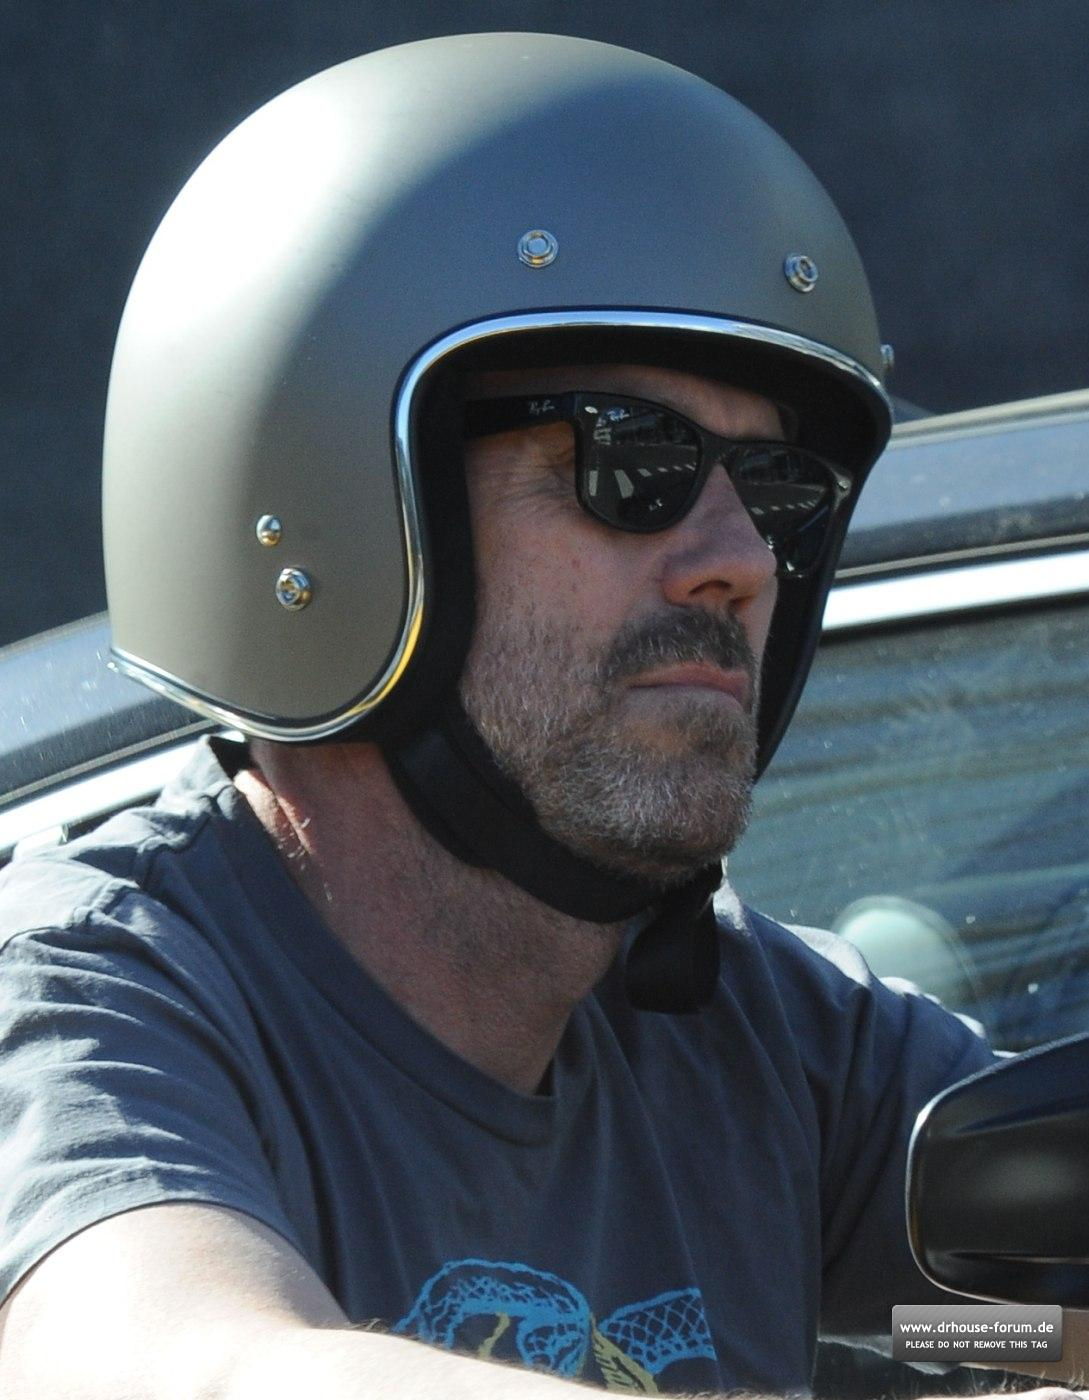 http://4.bp.blogspot.com/-AeB7GfQoYG0/T1P4fv0YqeI/AAAAAAAAA1g/eoBc4dreJmo/s1600/Hugh+Laurie+-+Riding+his+Harley+Davidson+along+the+Sunset+Boulevard+-+March+20123.jpg